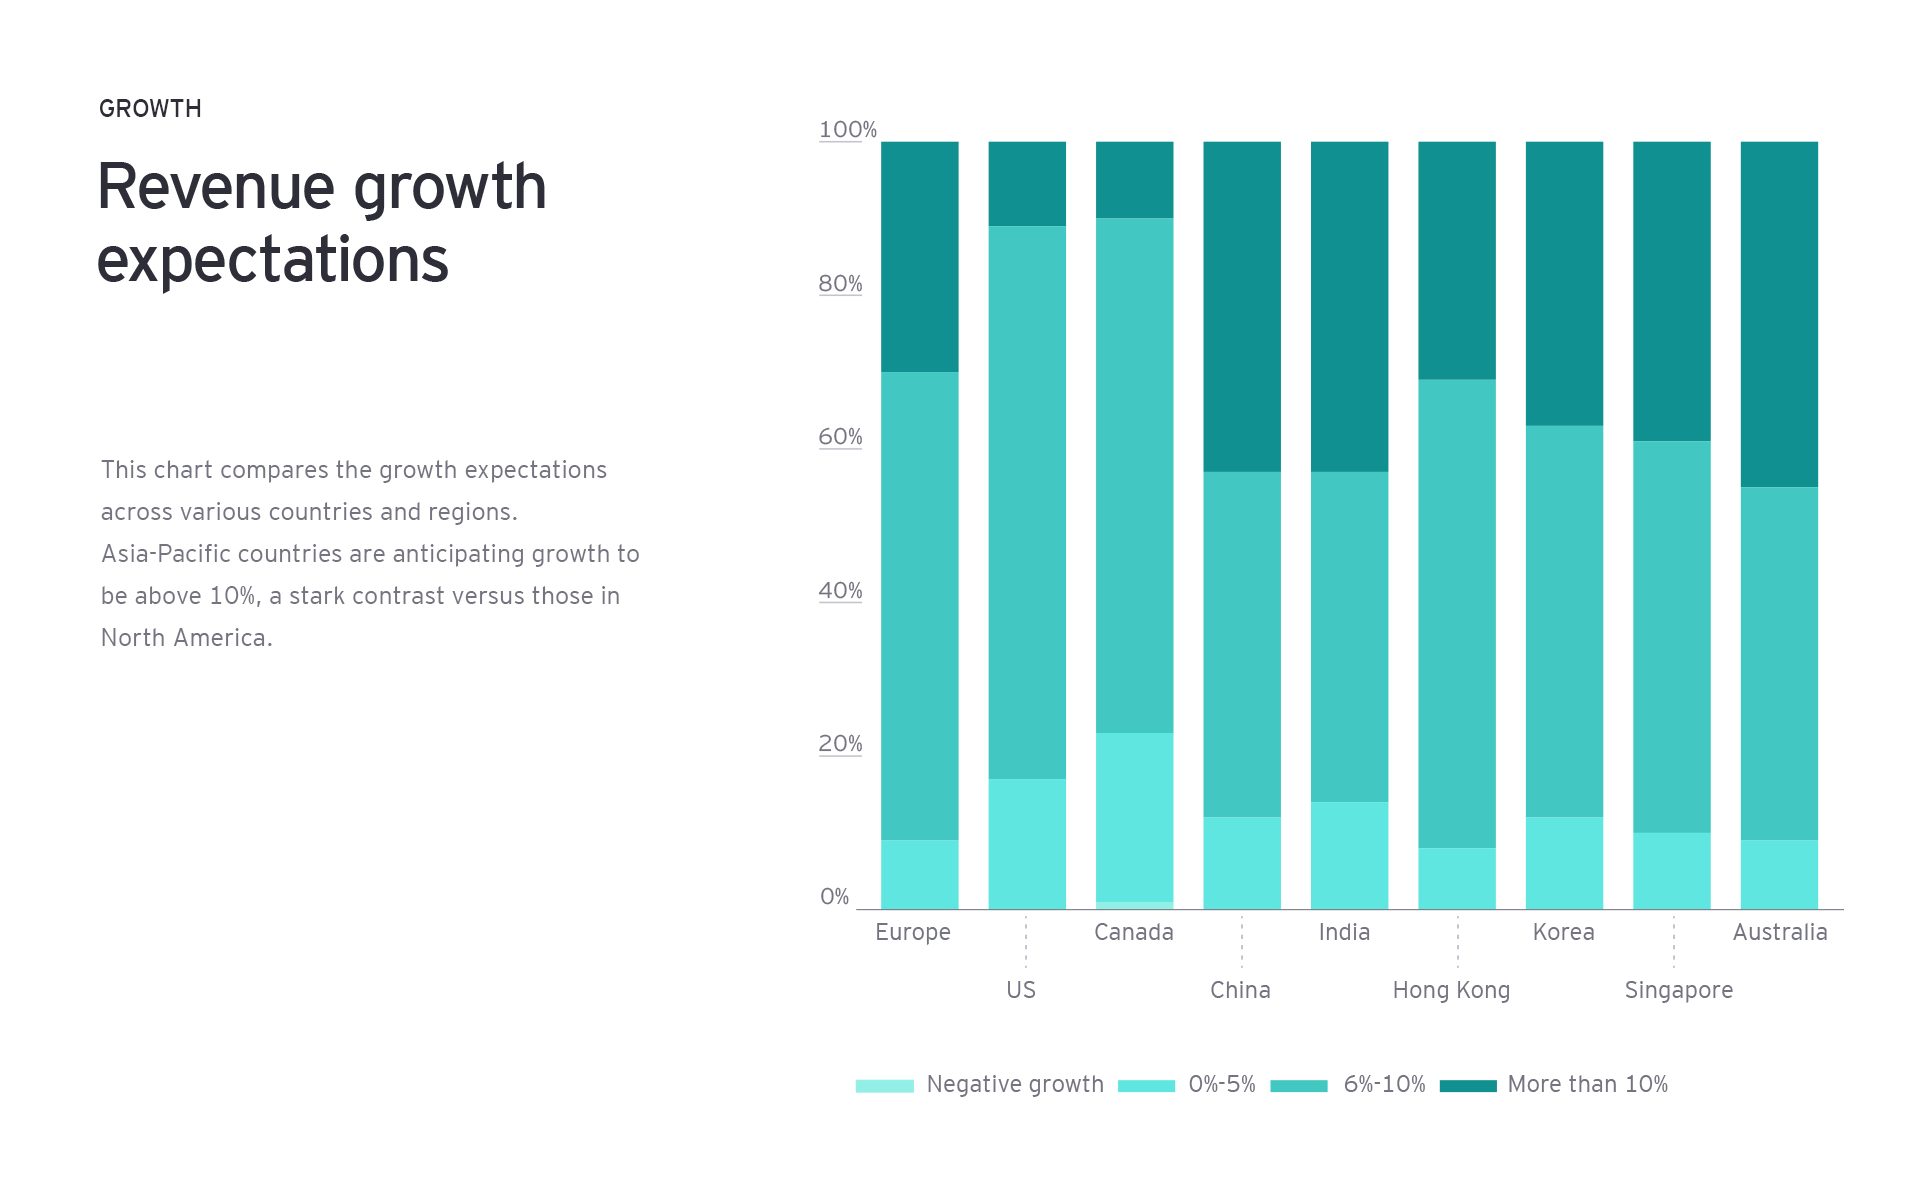 Revenue growth expectations chart